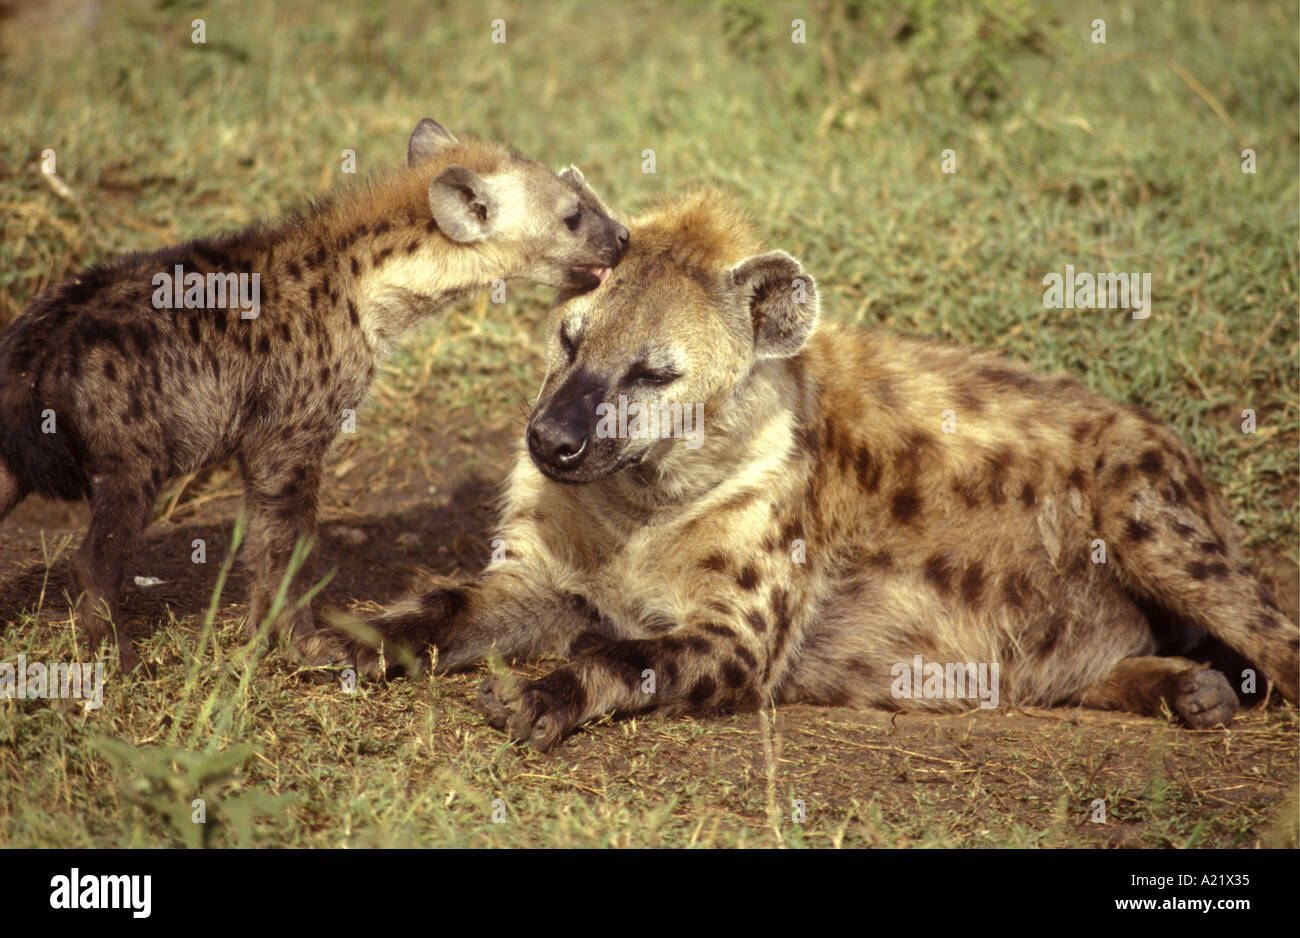 Adult Spotted Hyena being groomed and greeted by an immature puppy Masai Mara National Reserve Kenya East Africa - Stock Image